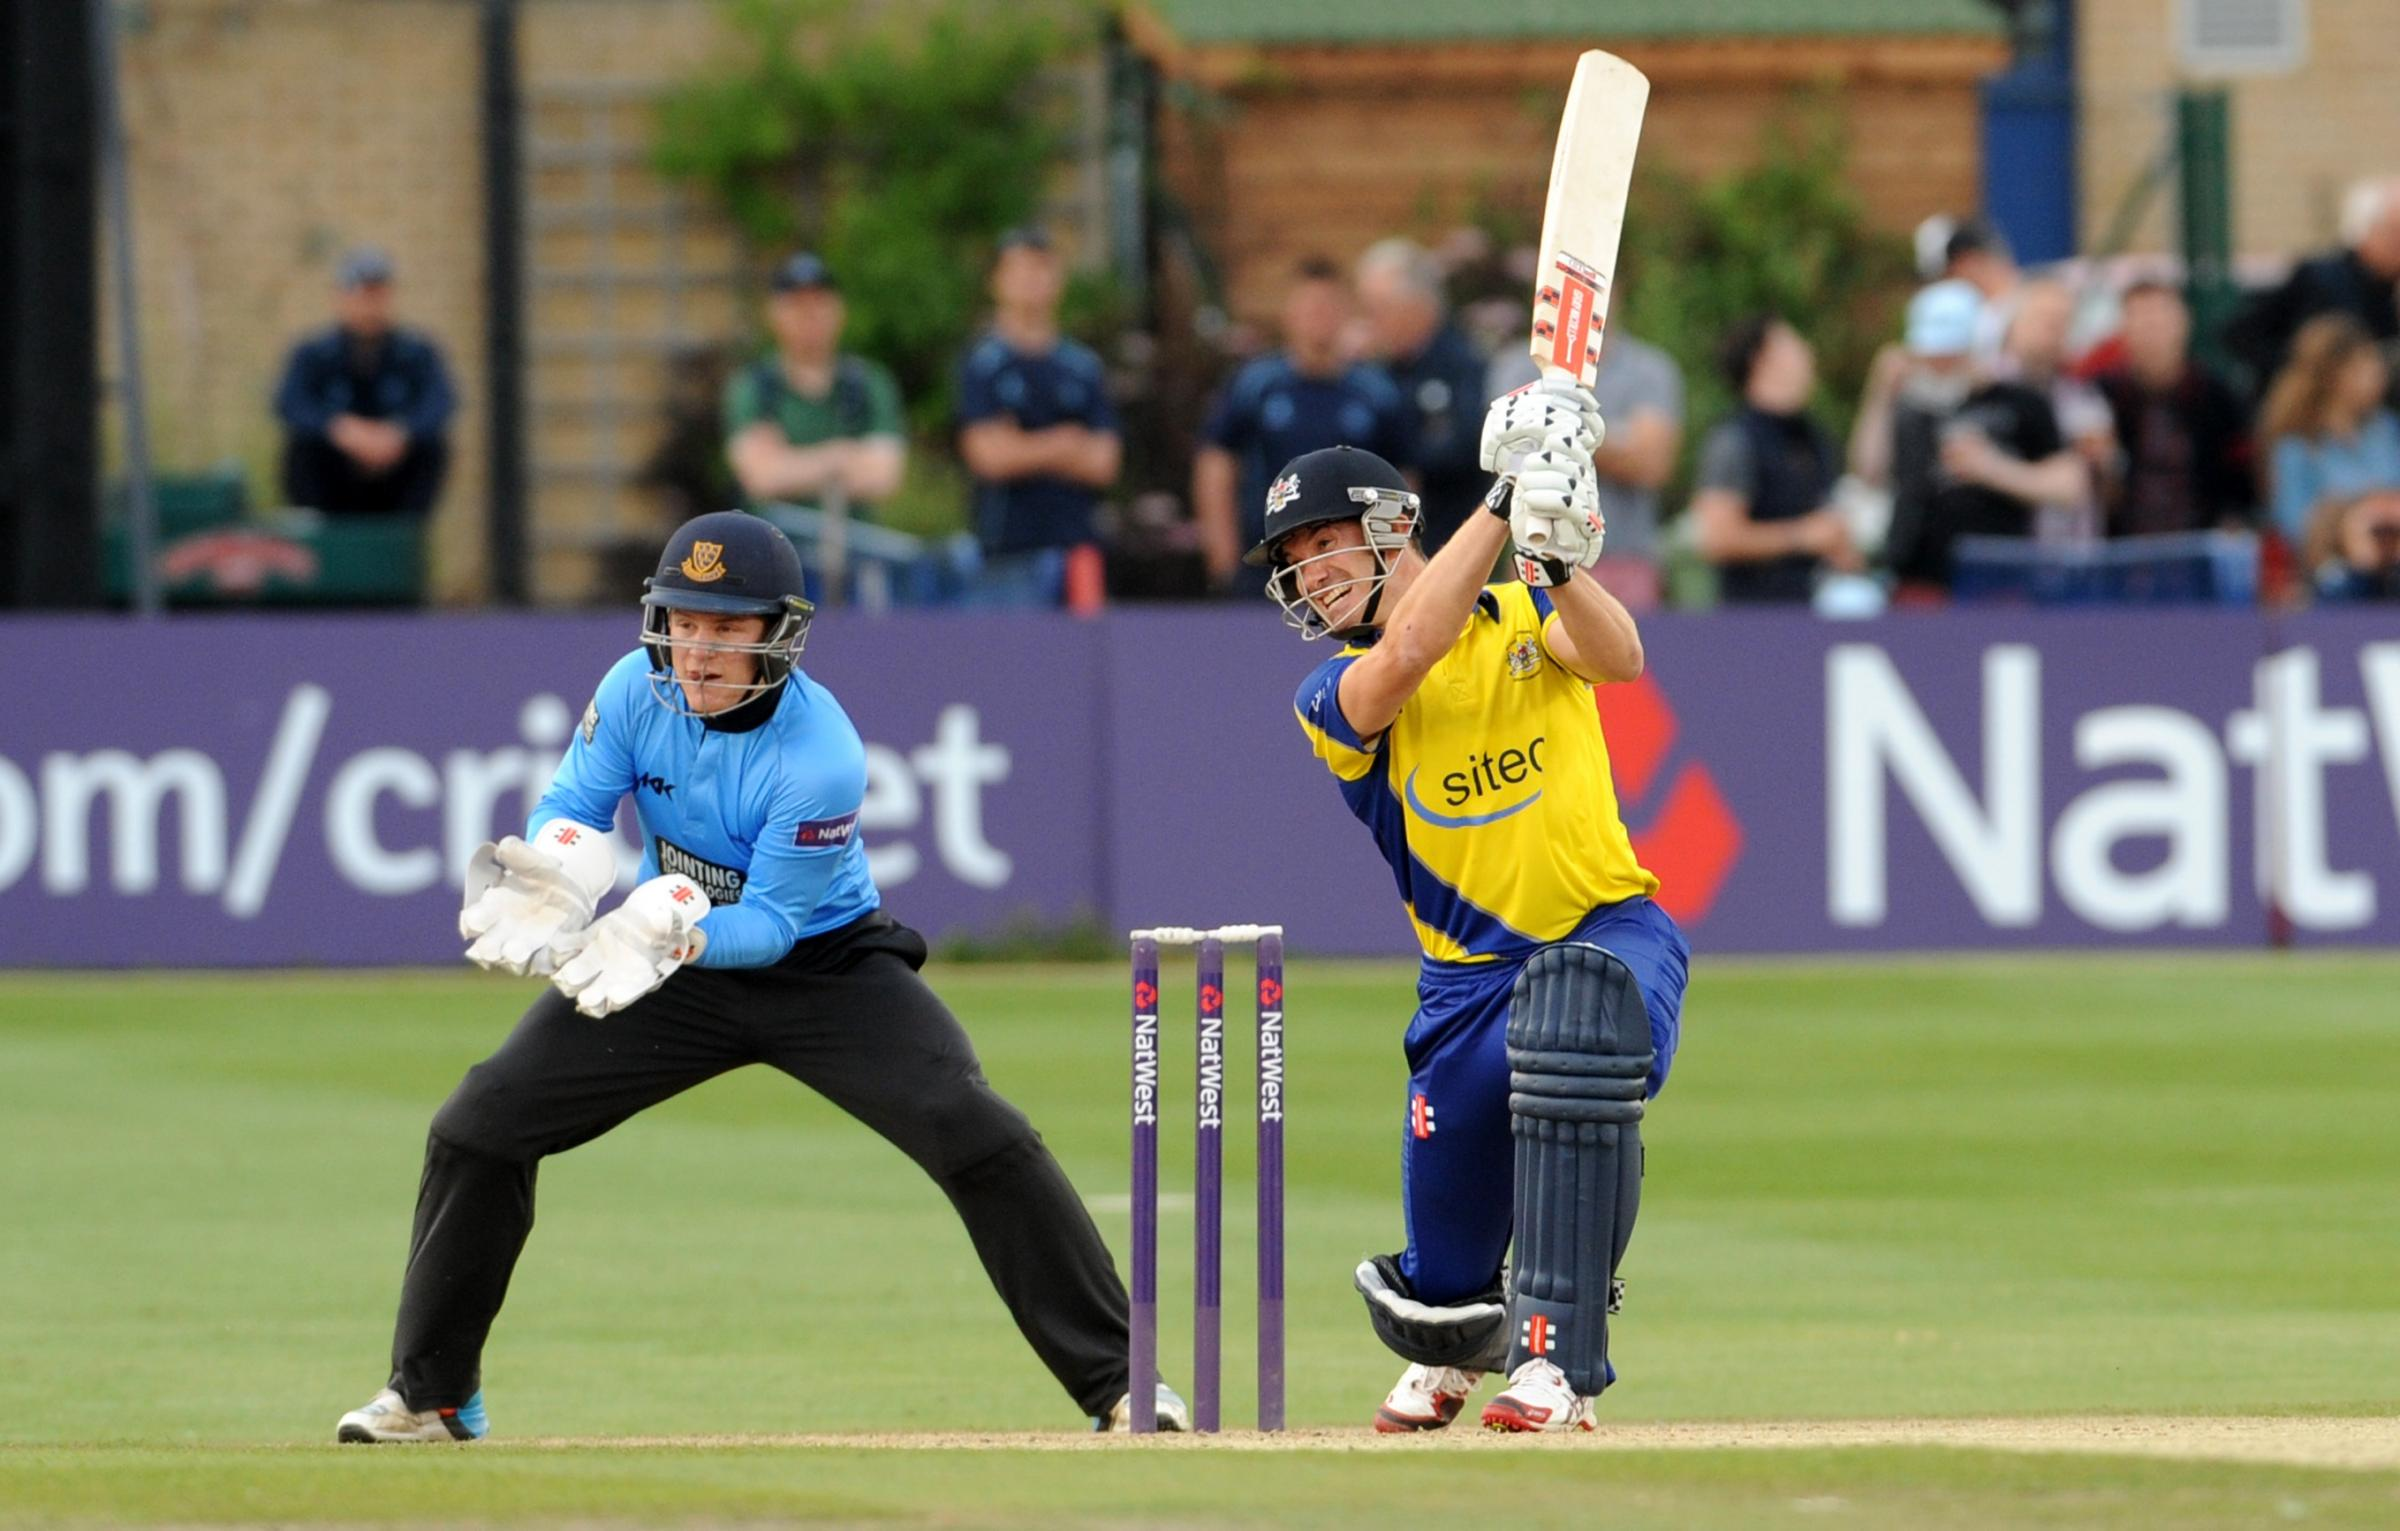 Captain Michael Klinger top-scored for Gloucestershire